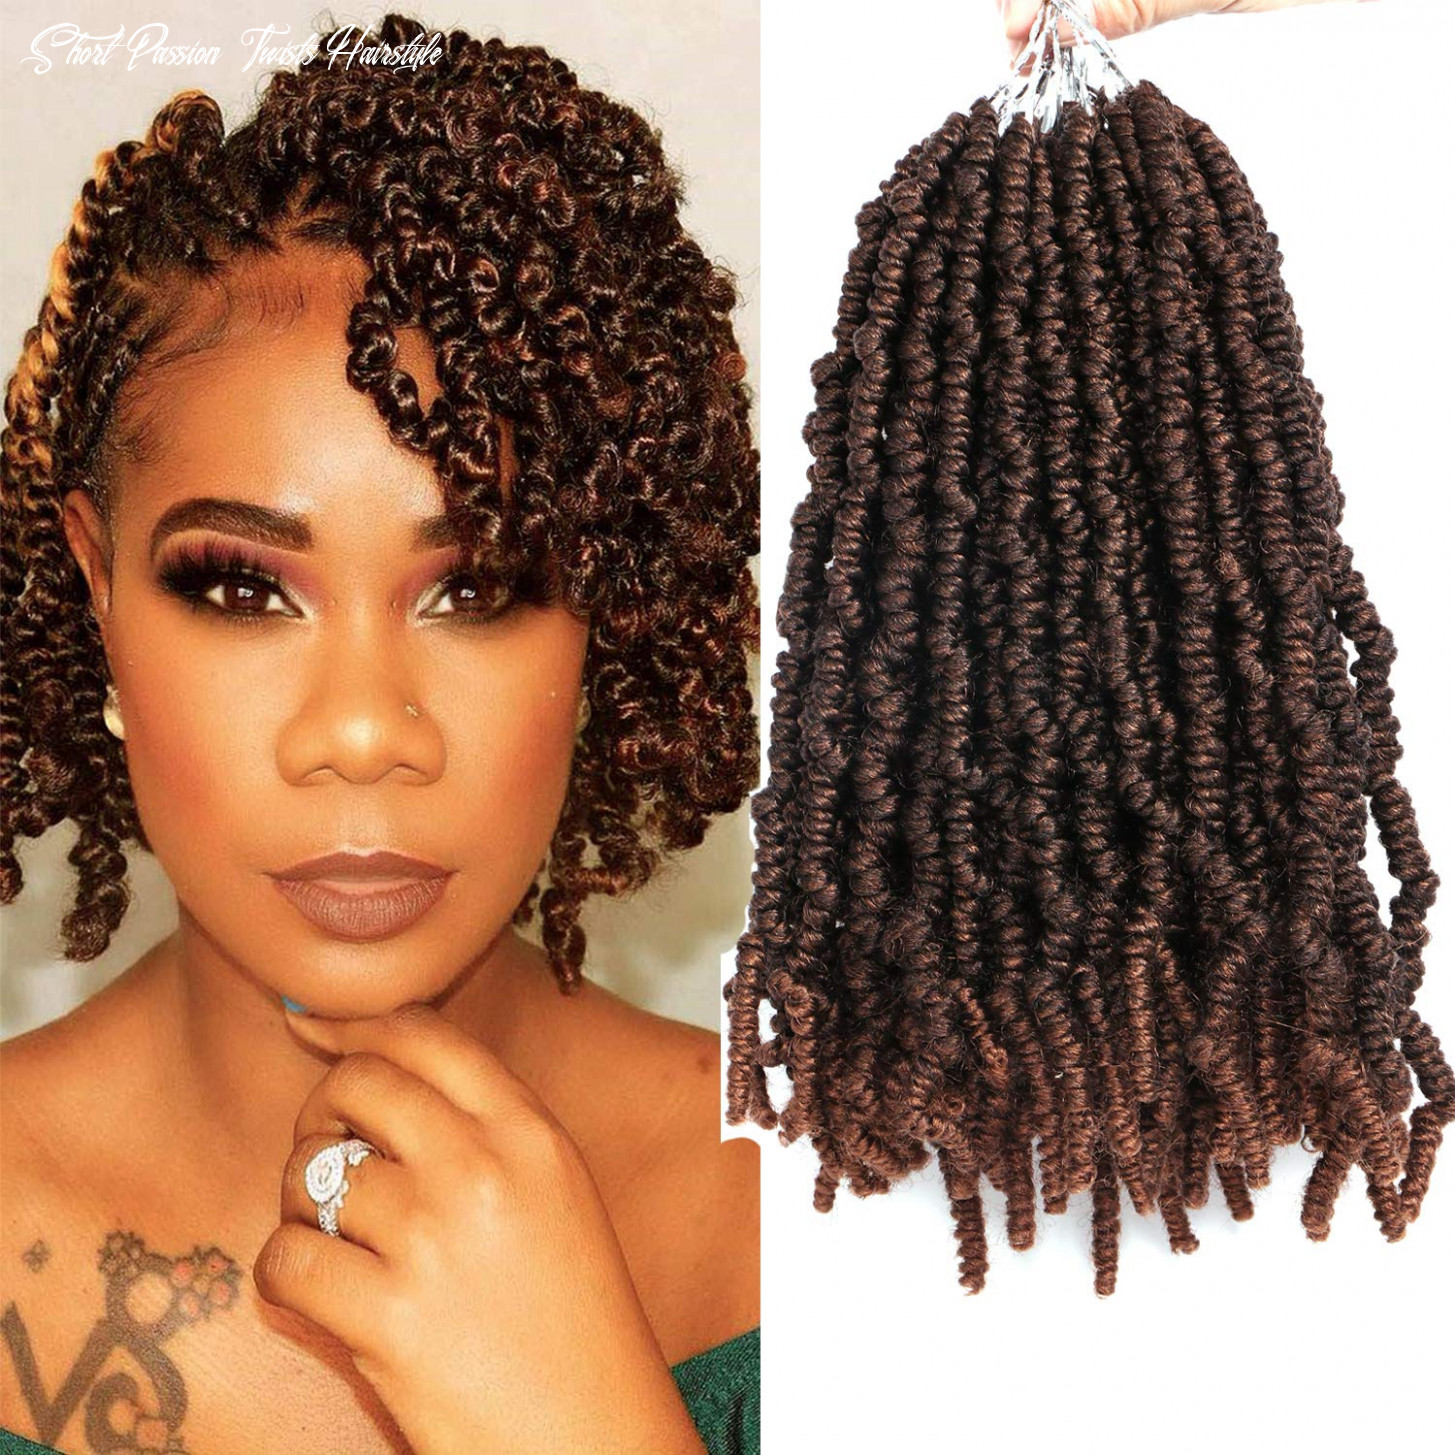 1111 packs 1111 inch pre looped spring twist hair short curly passion twist crochet braids fiber fluffy wavy synthetic braiding hair extensions (t11b/11#) short passion twists hairstyle